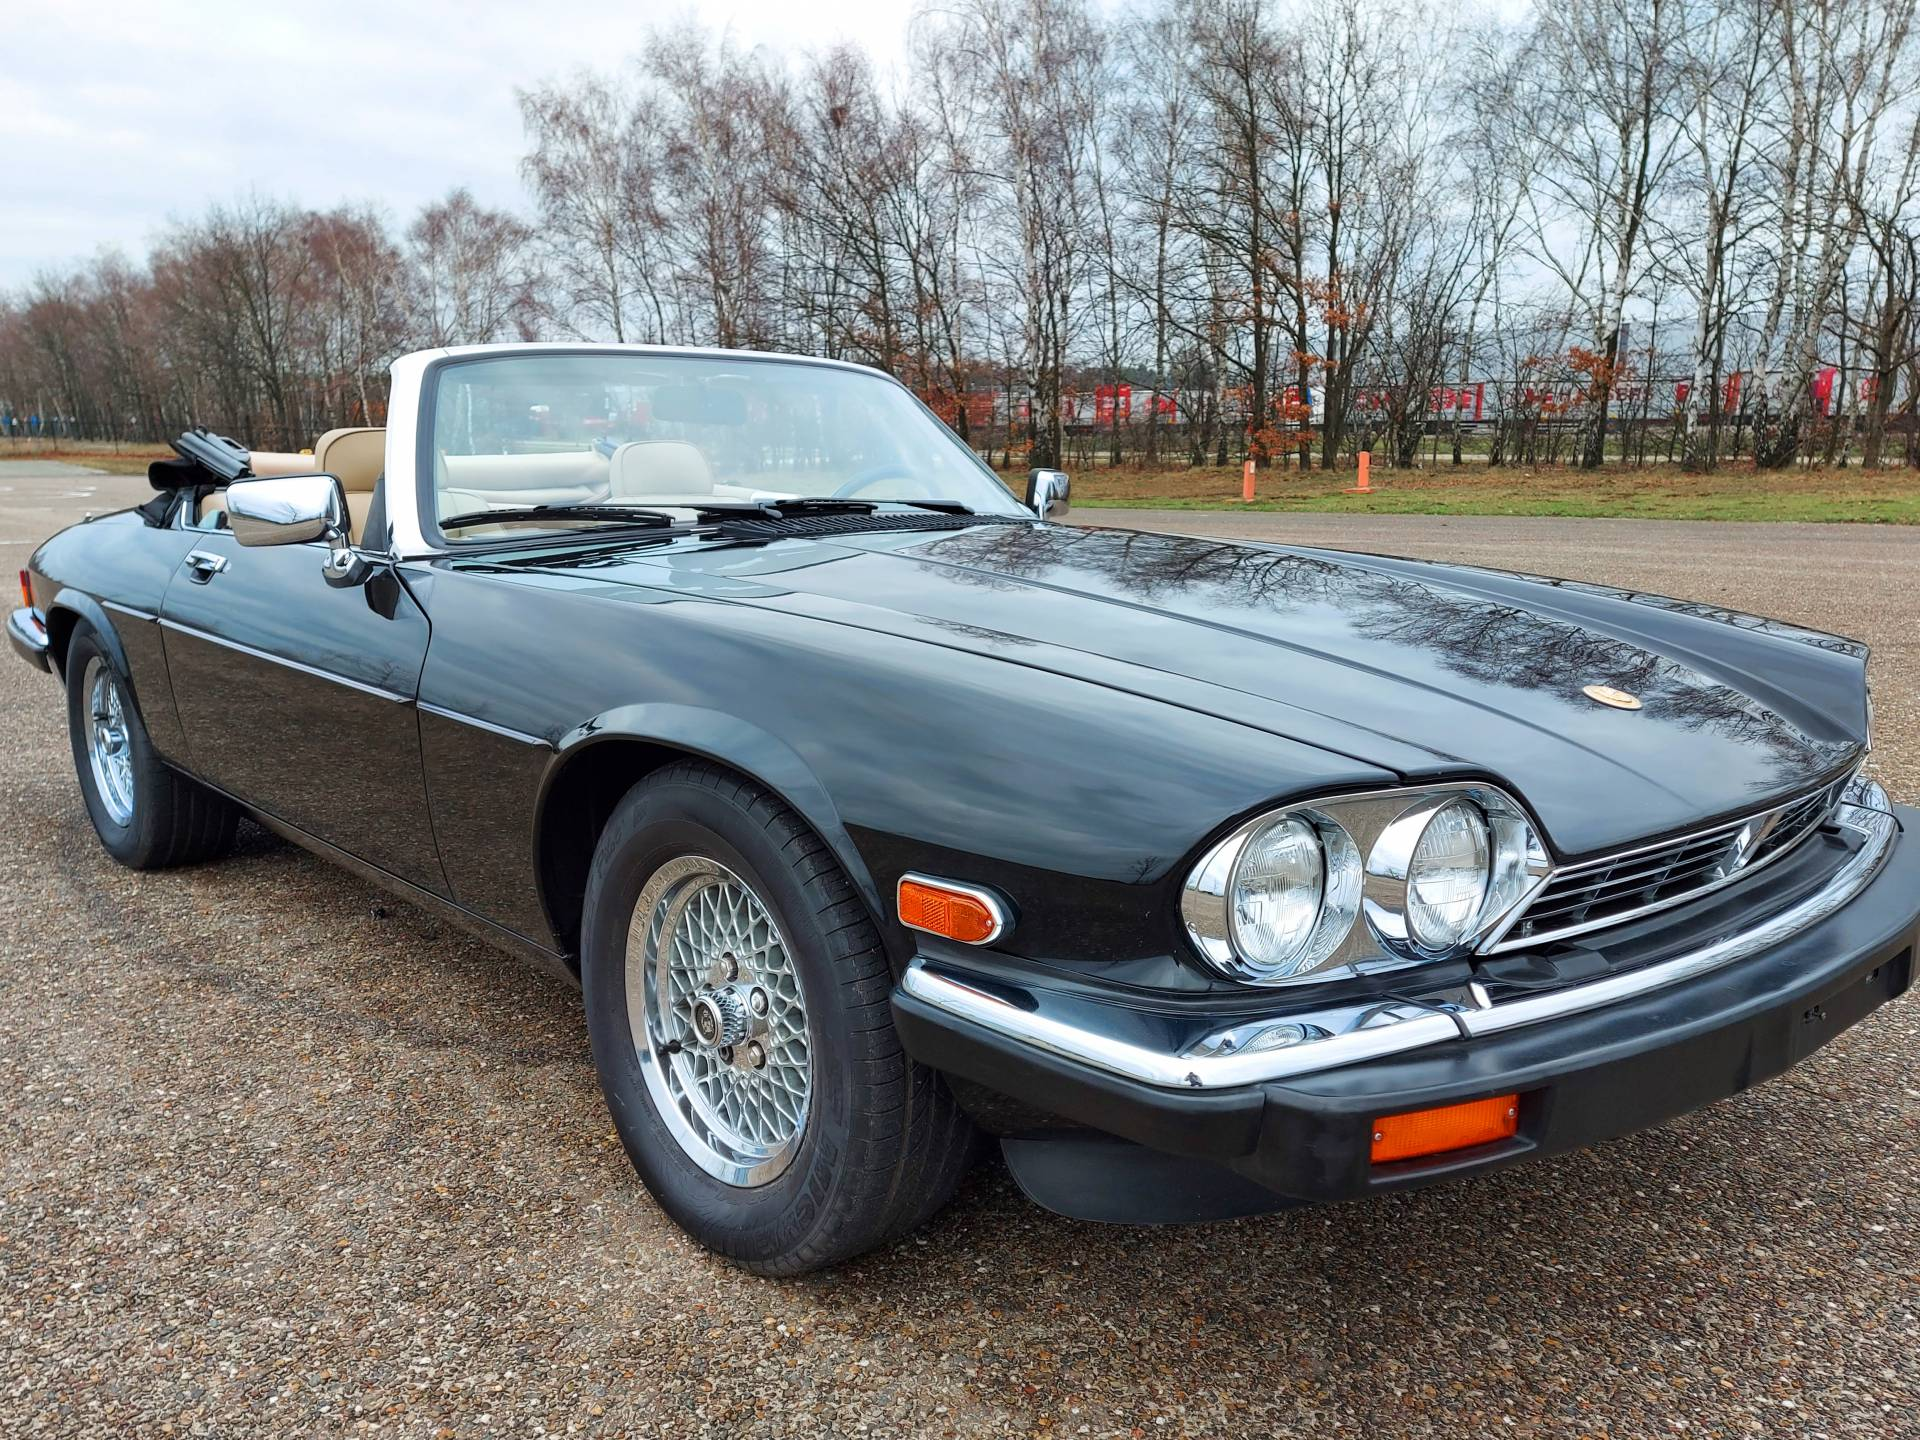 Jaguar XJ-S Convertible - Jaguar XJS 5.3 V12 Convertible Classic Collection 1990